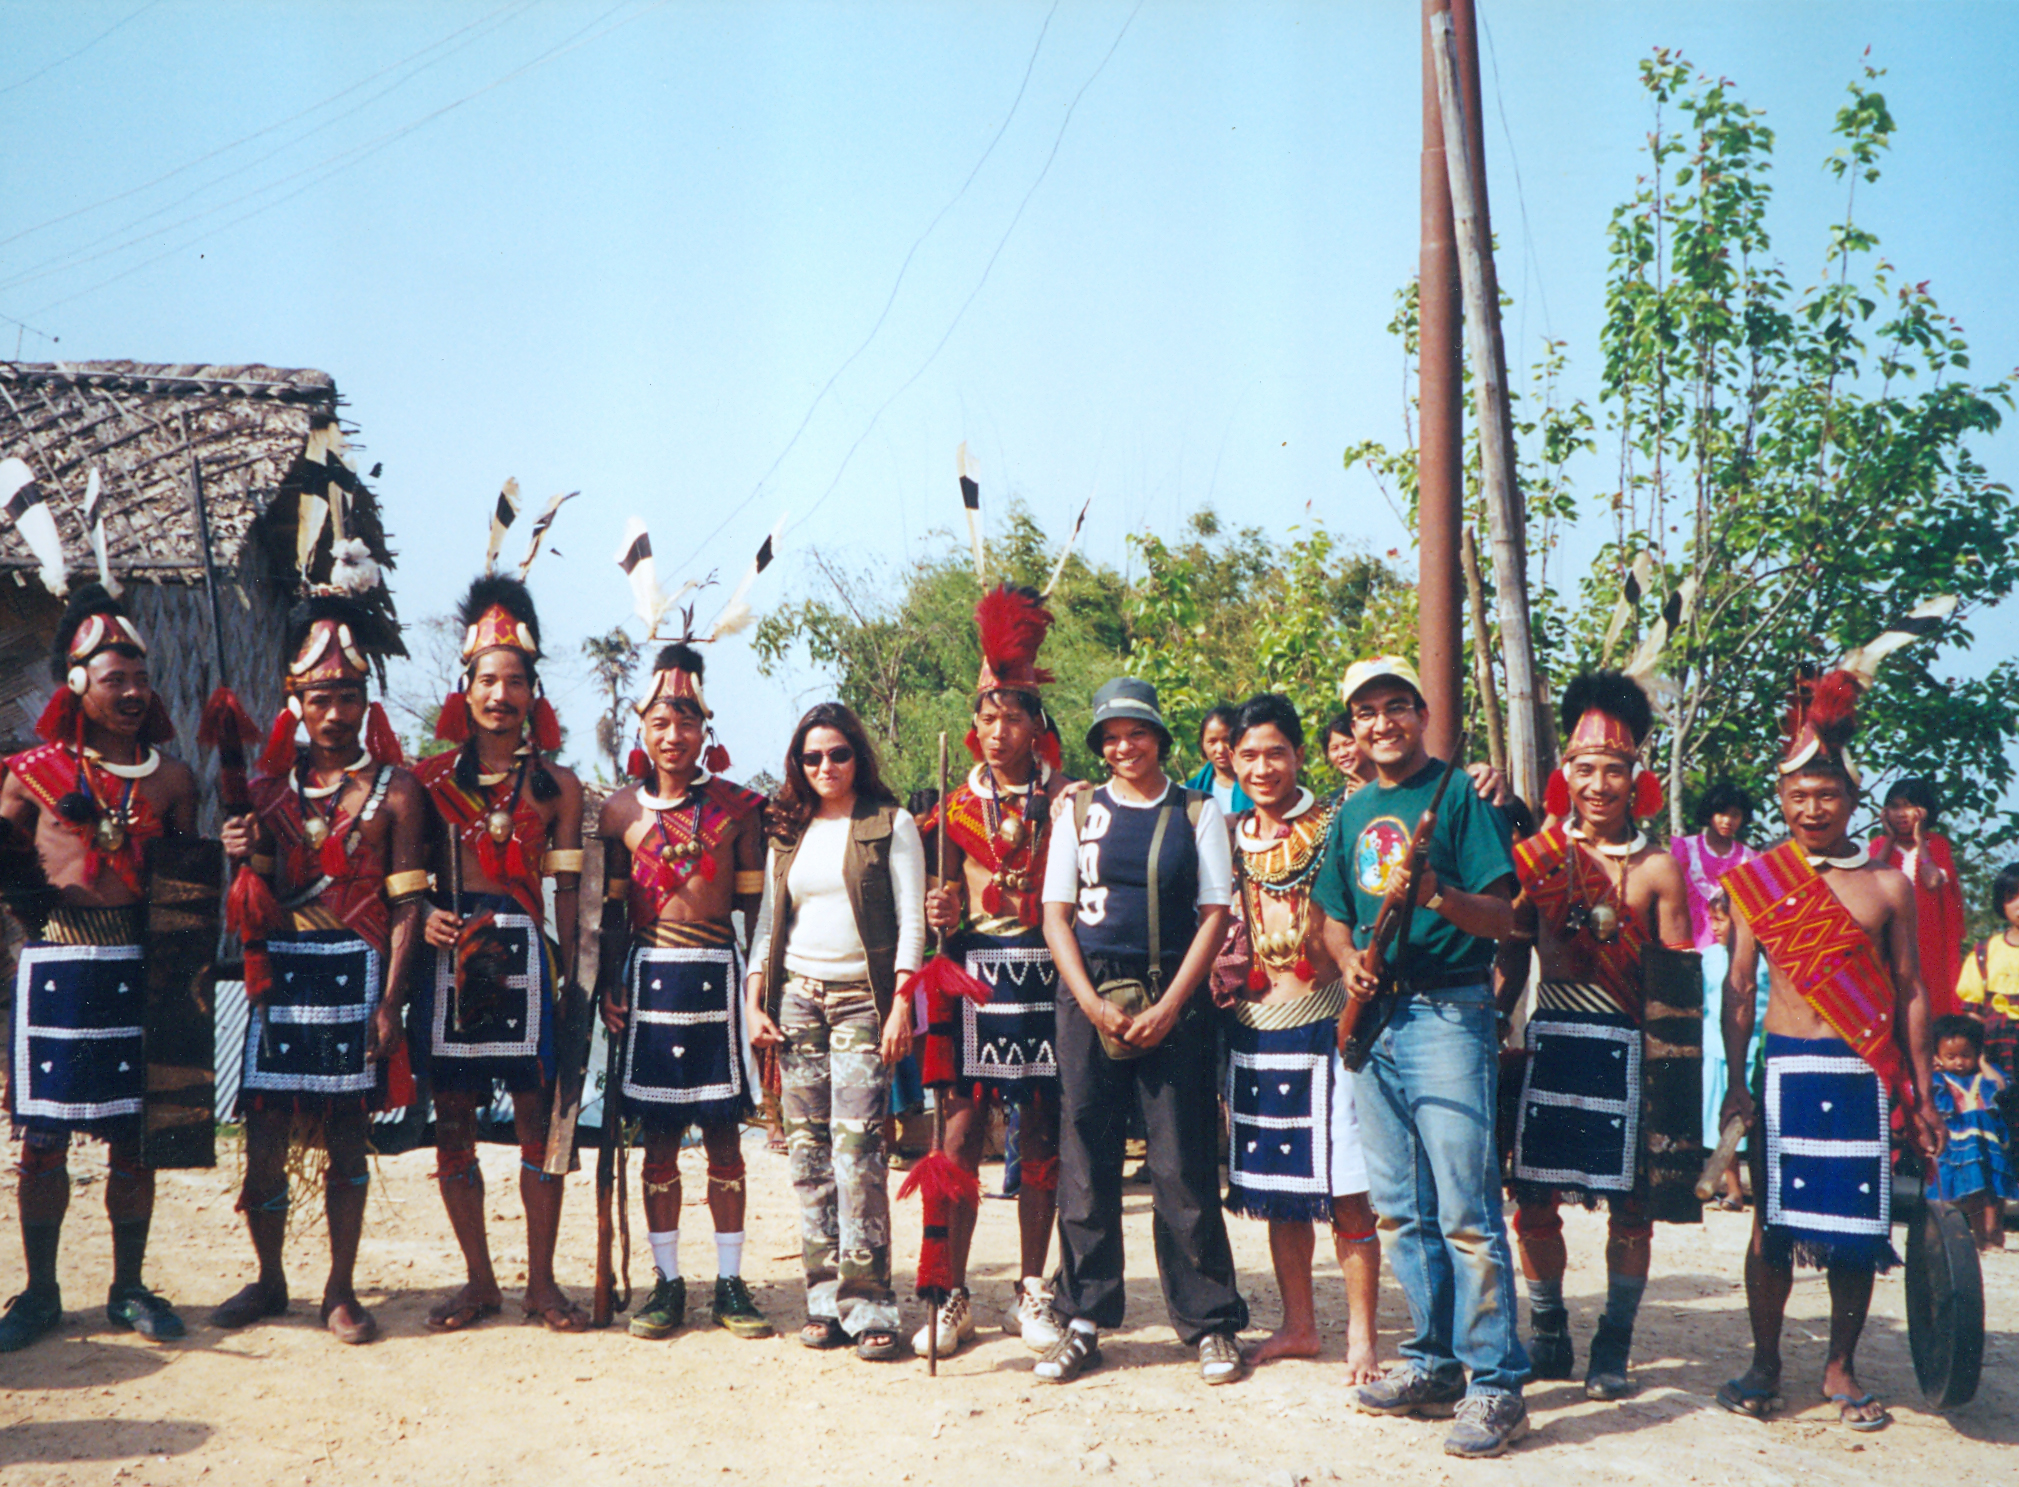 Anu Malhotra and Crew with Konyak Men, Wanching Village, Nagaland, 2001